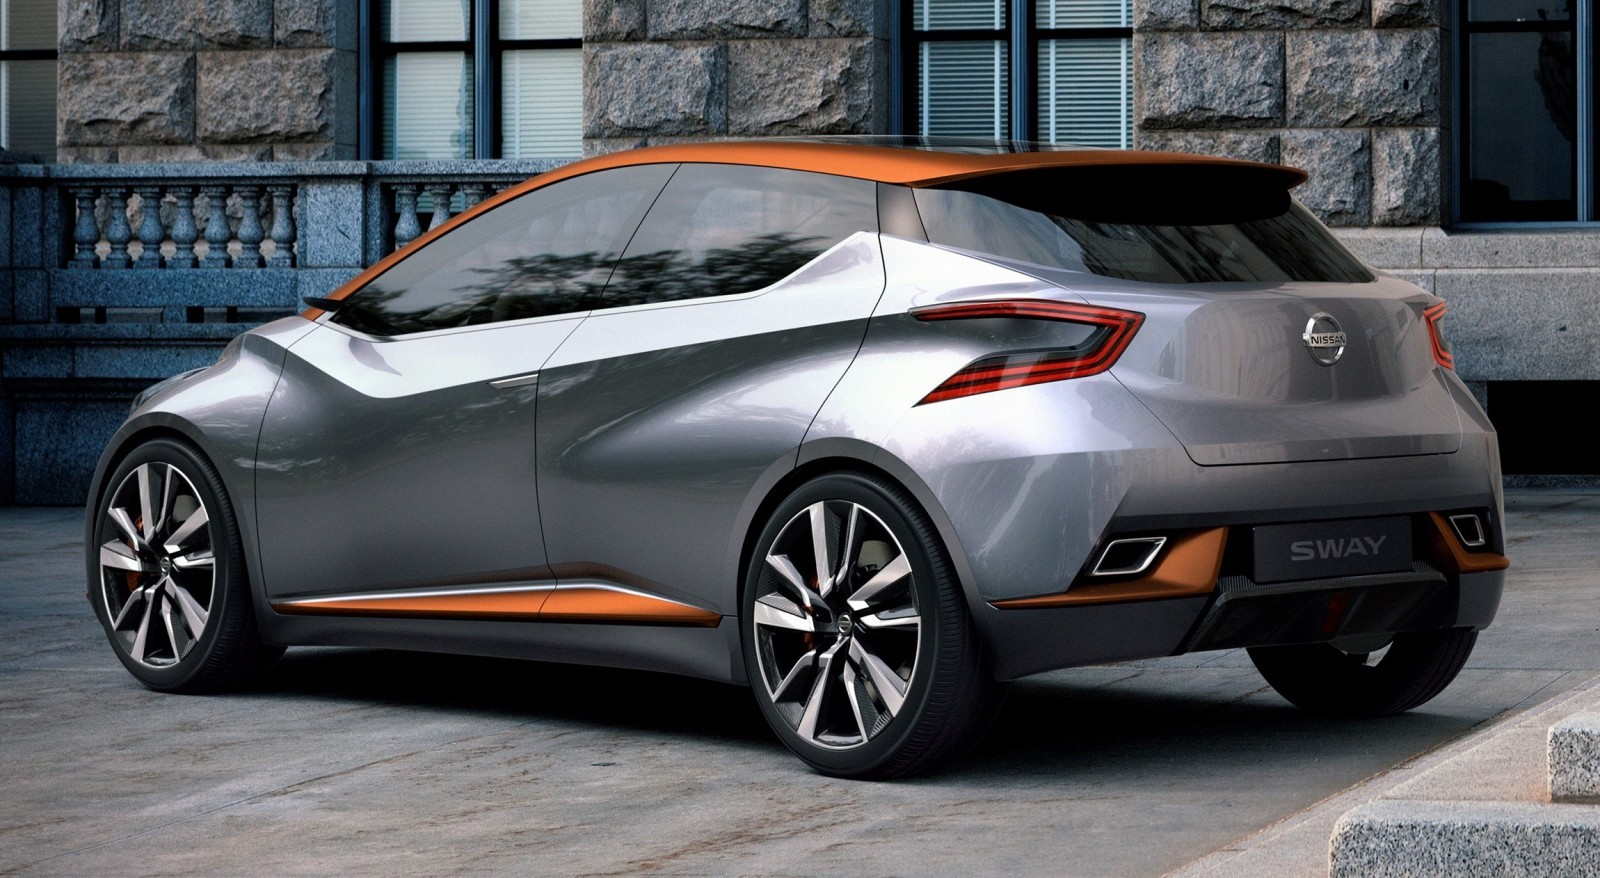 2015 Nissan SWAY Concept 6